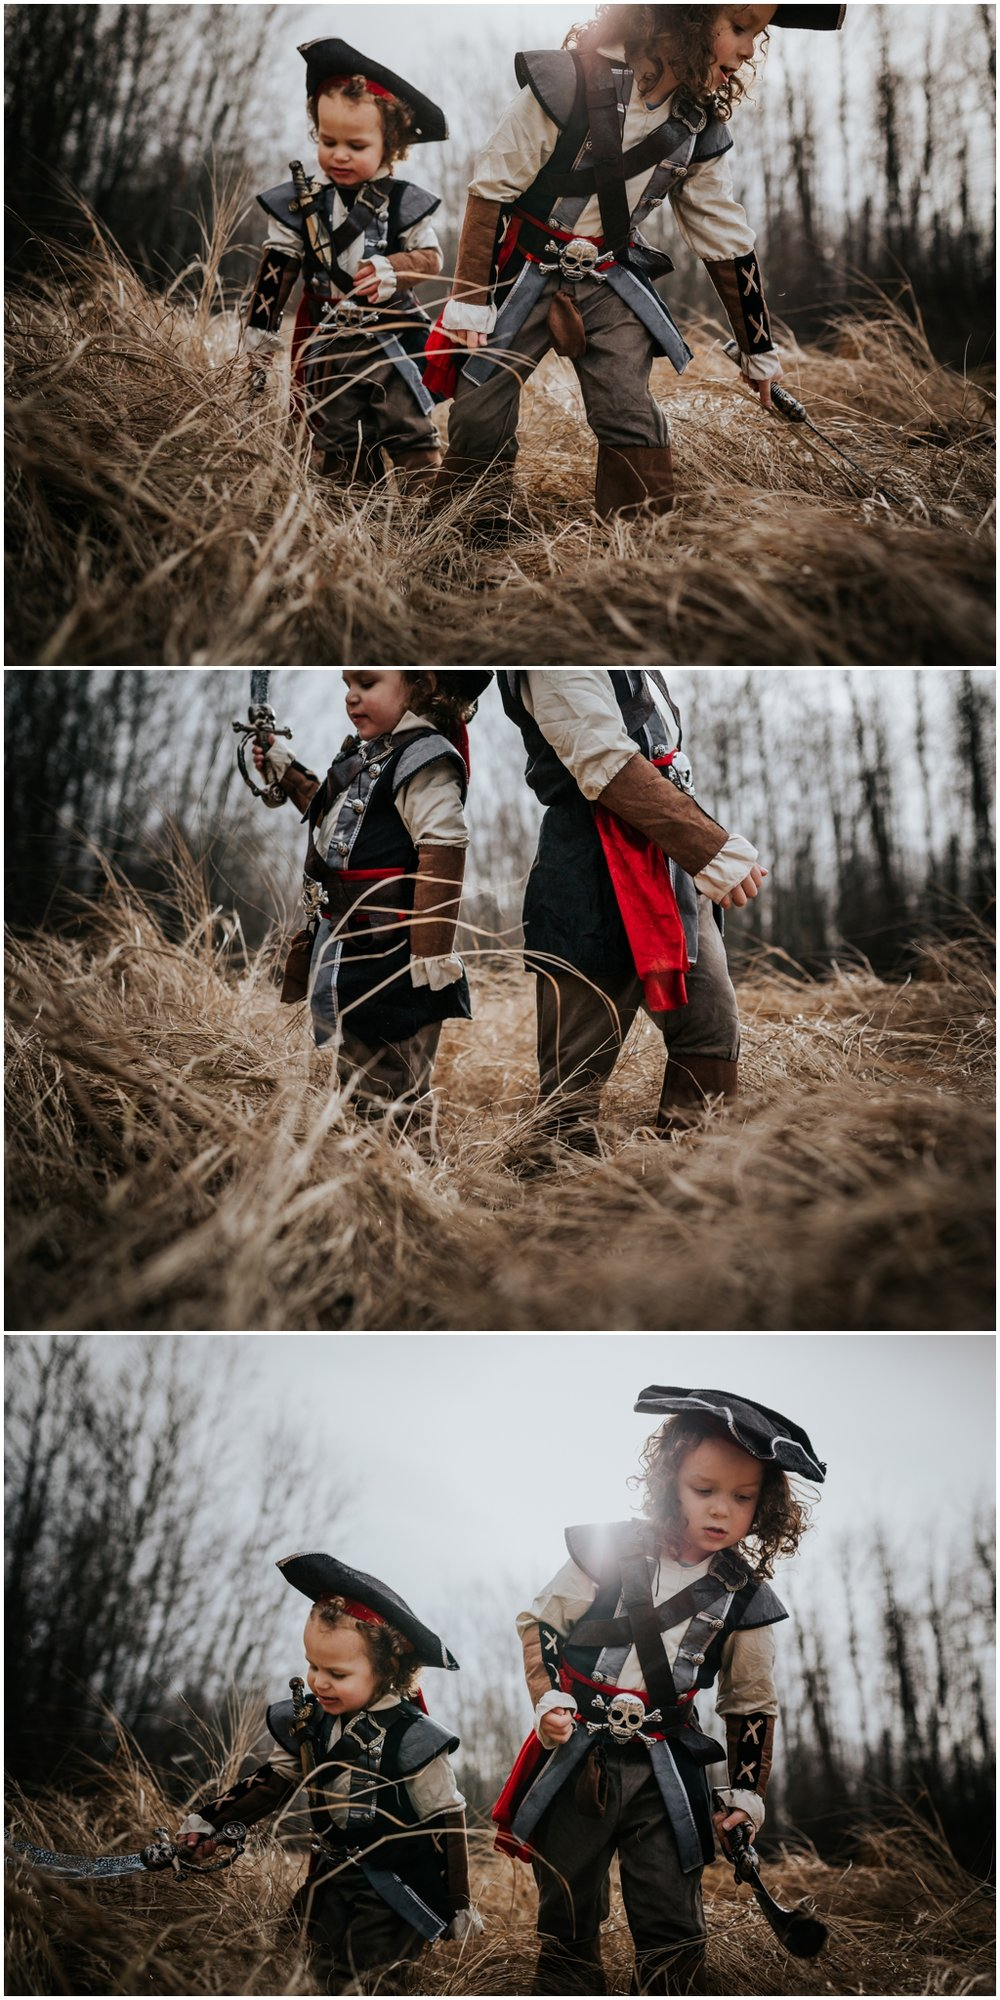 Alberta Child Photographer - Pirate Costume Halloween Lifestyle Documentary Photography YEG